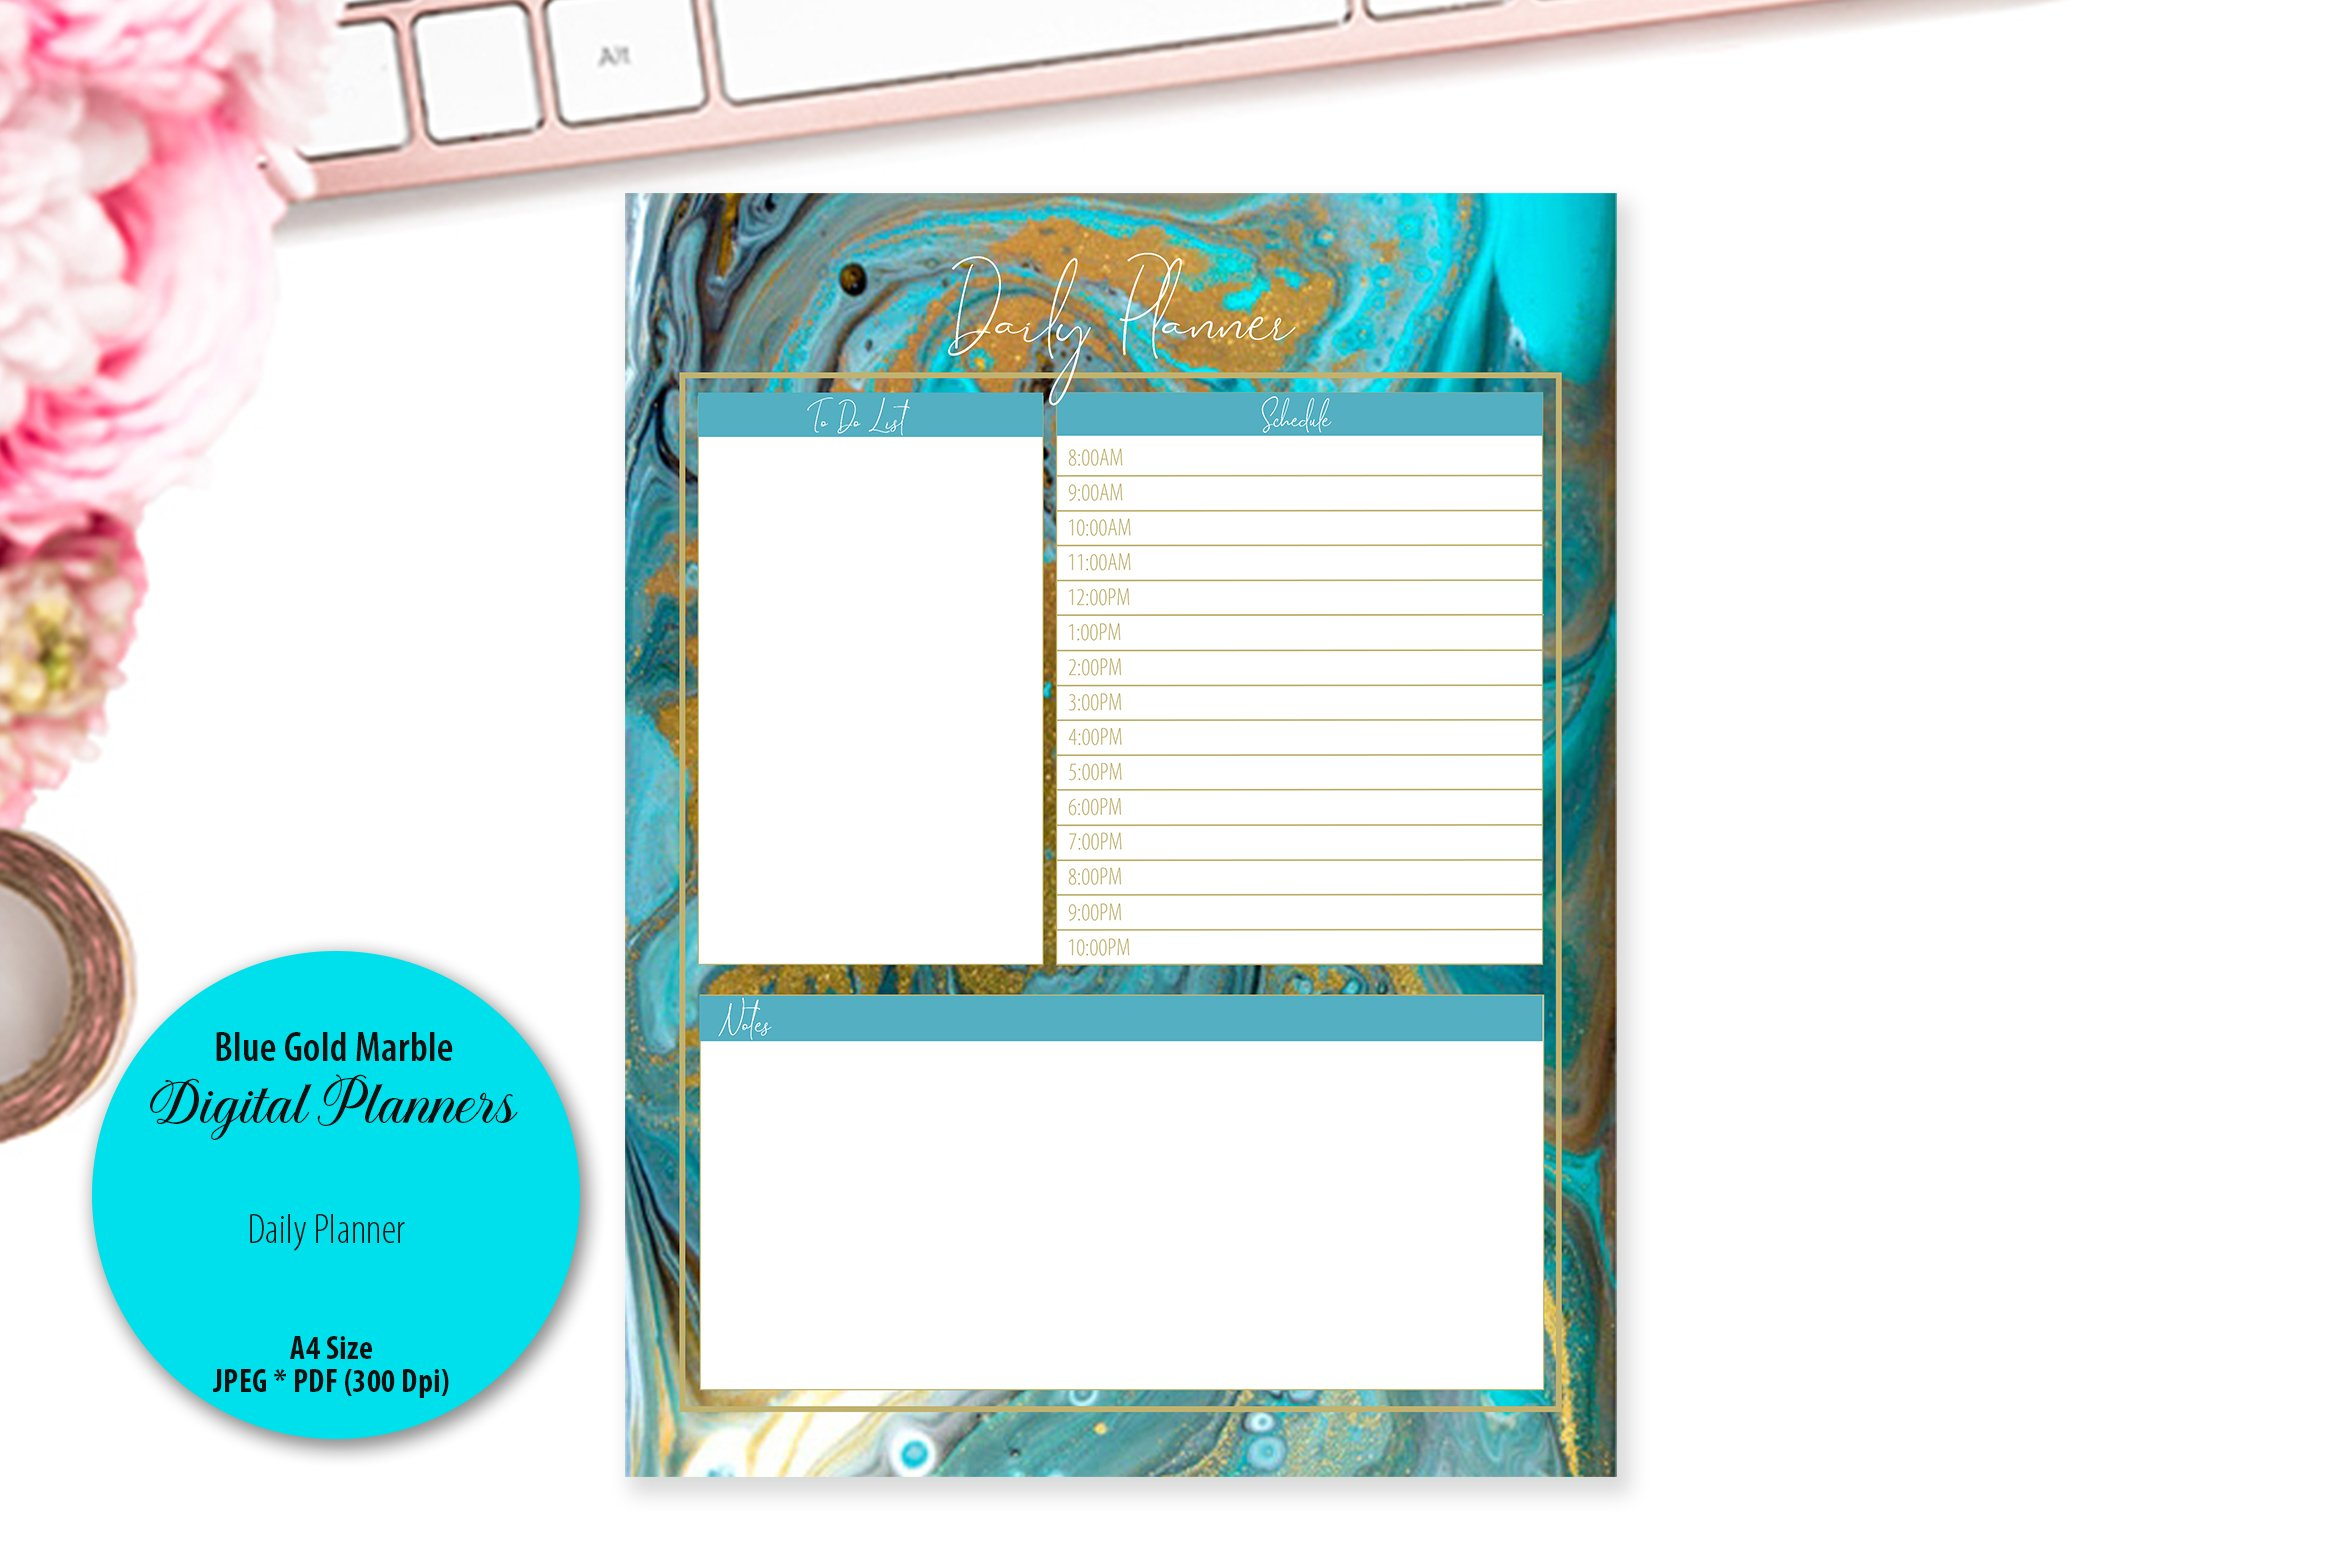 Blue Gold Marble Digital Planner example image 2